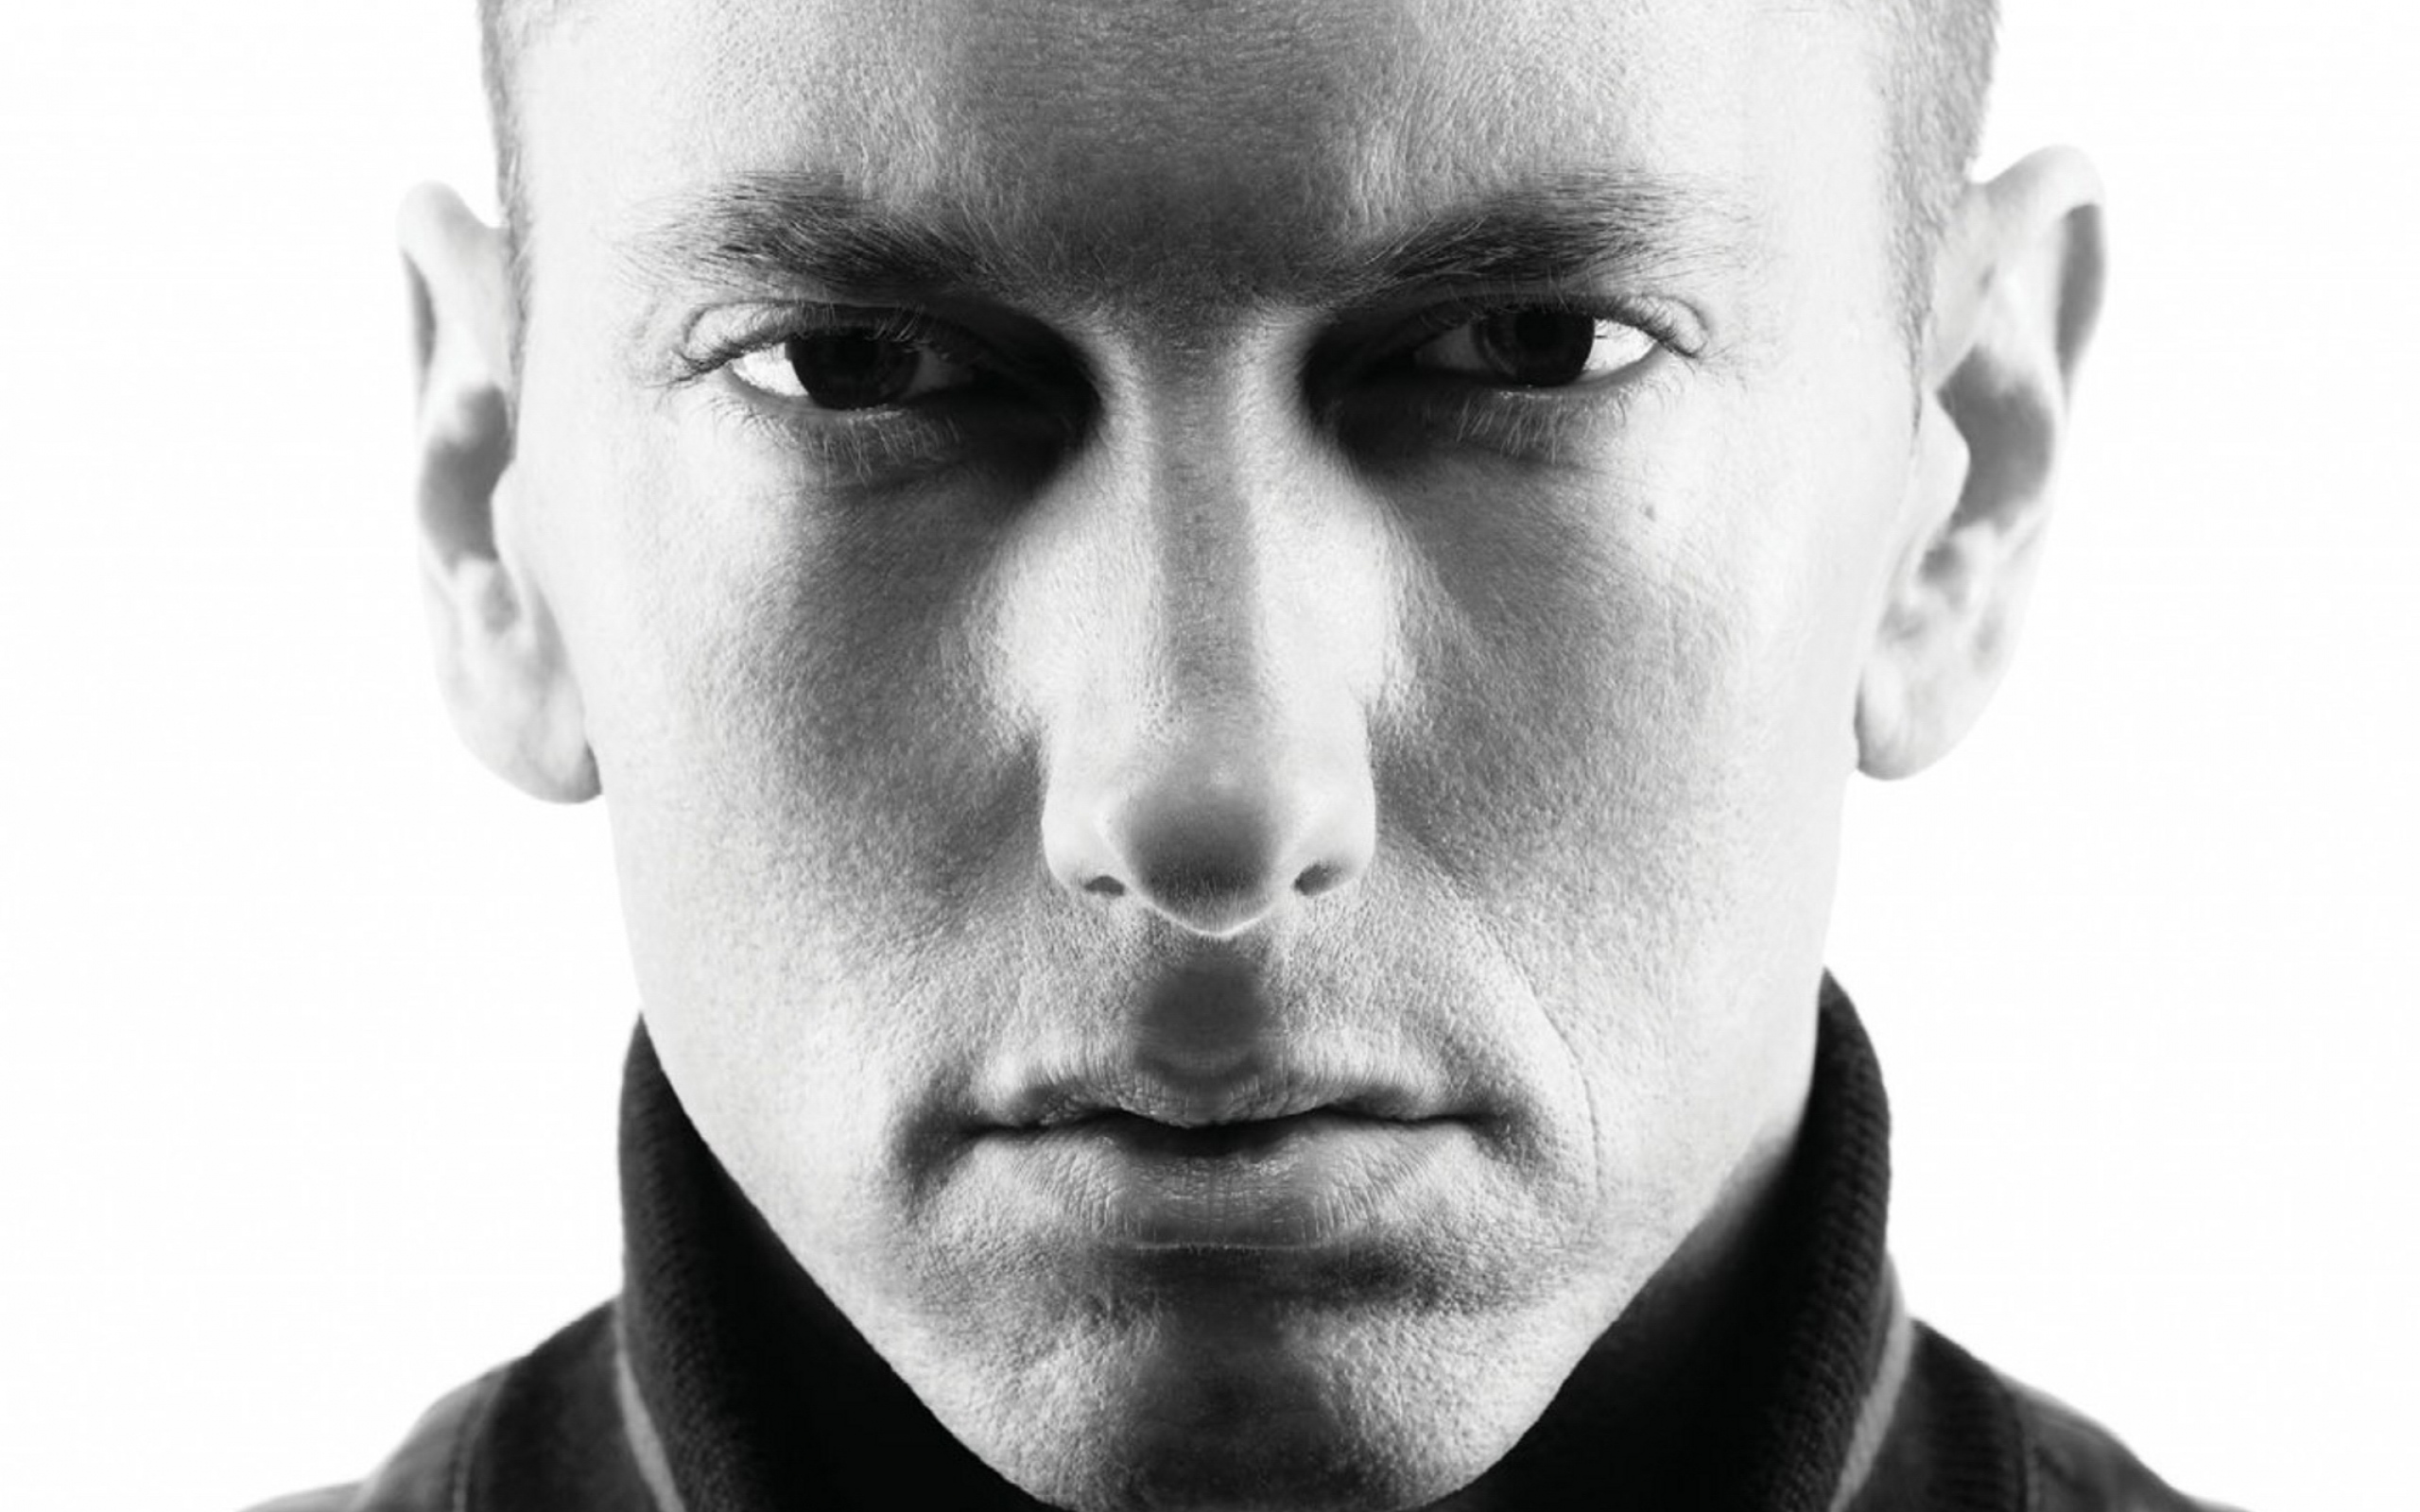 eminem Watch Eminem Talk About 'Kamikaze', 'Revival' Album Criticism, MGK & More eminem slim shady evil celebrity singer actor black white 97148 2560x1600